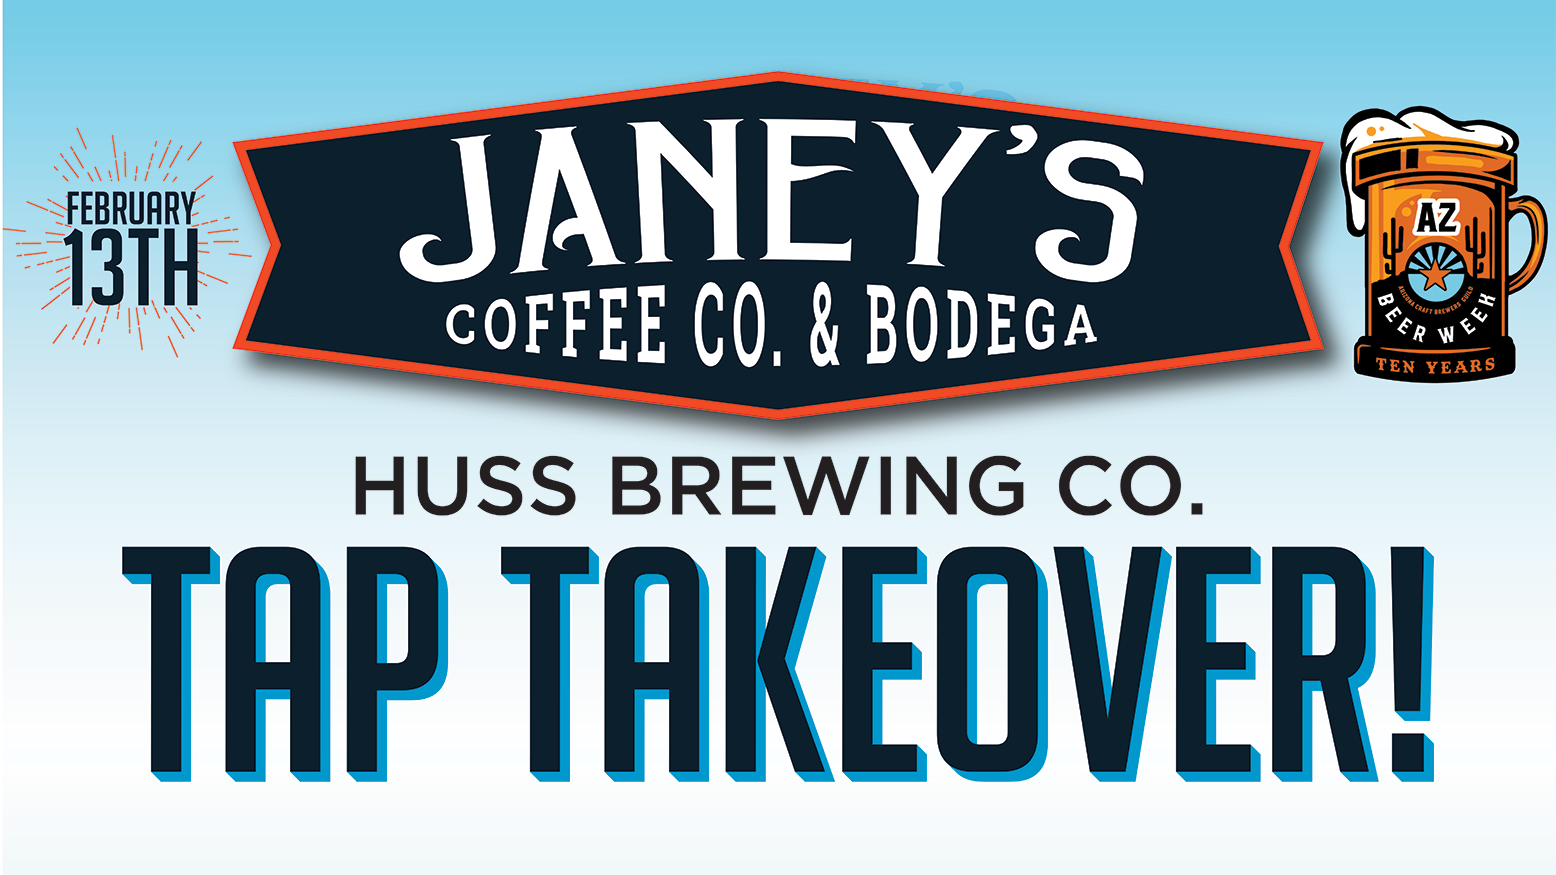 Cave Creek Tap Takeover @ Janey's